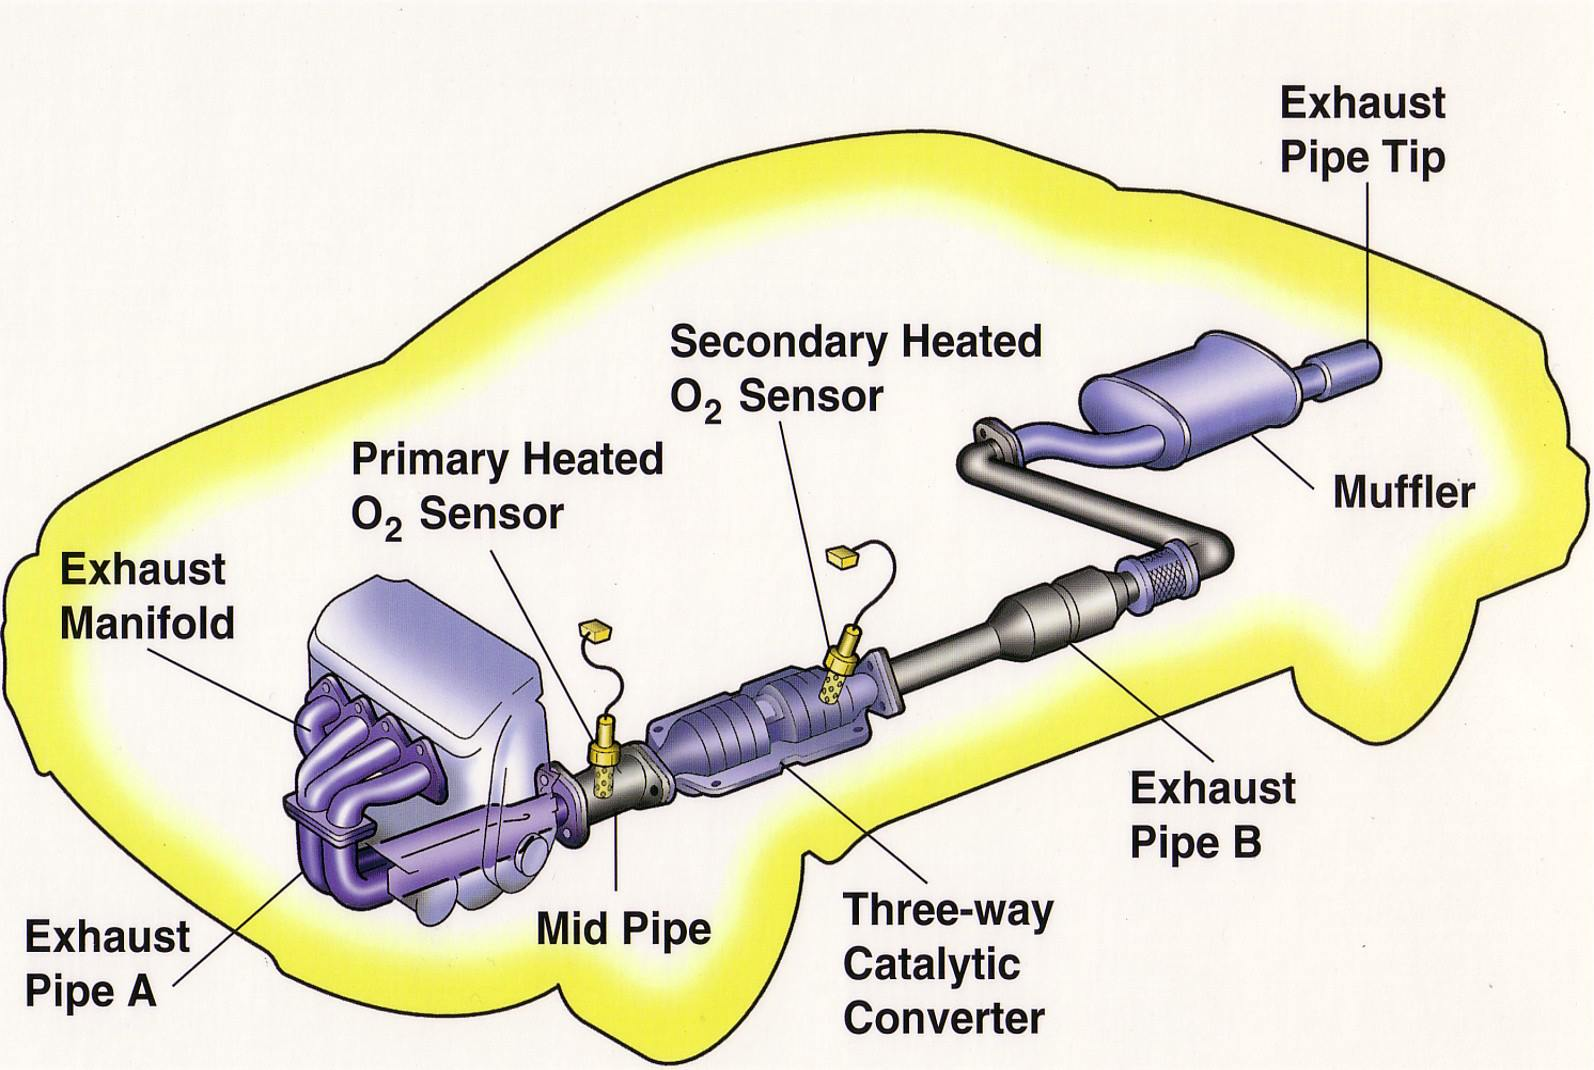 1998 Honda Accord Exhaust System Diagram Trusted Wiring 2007 Labeled